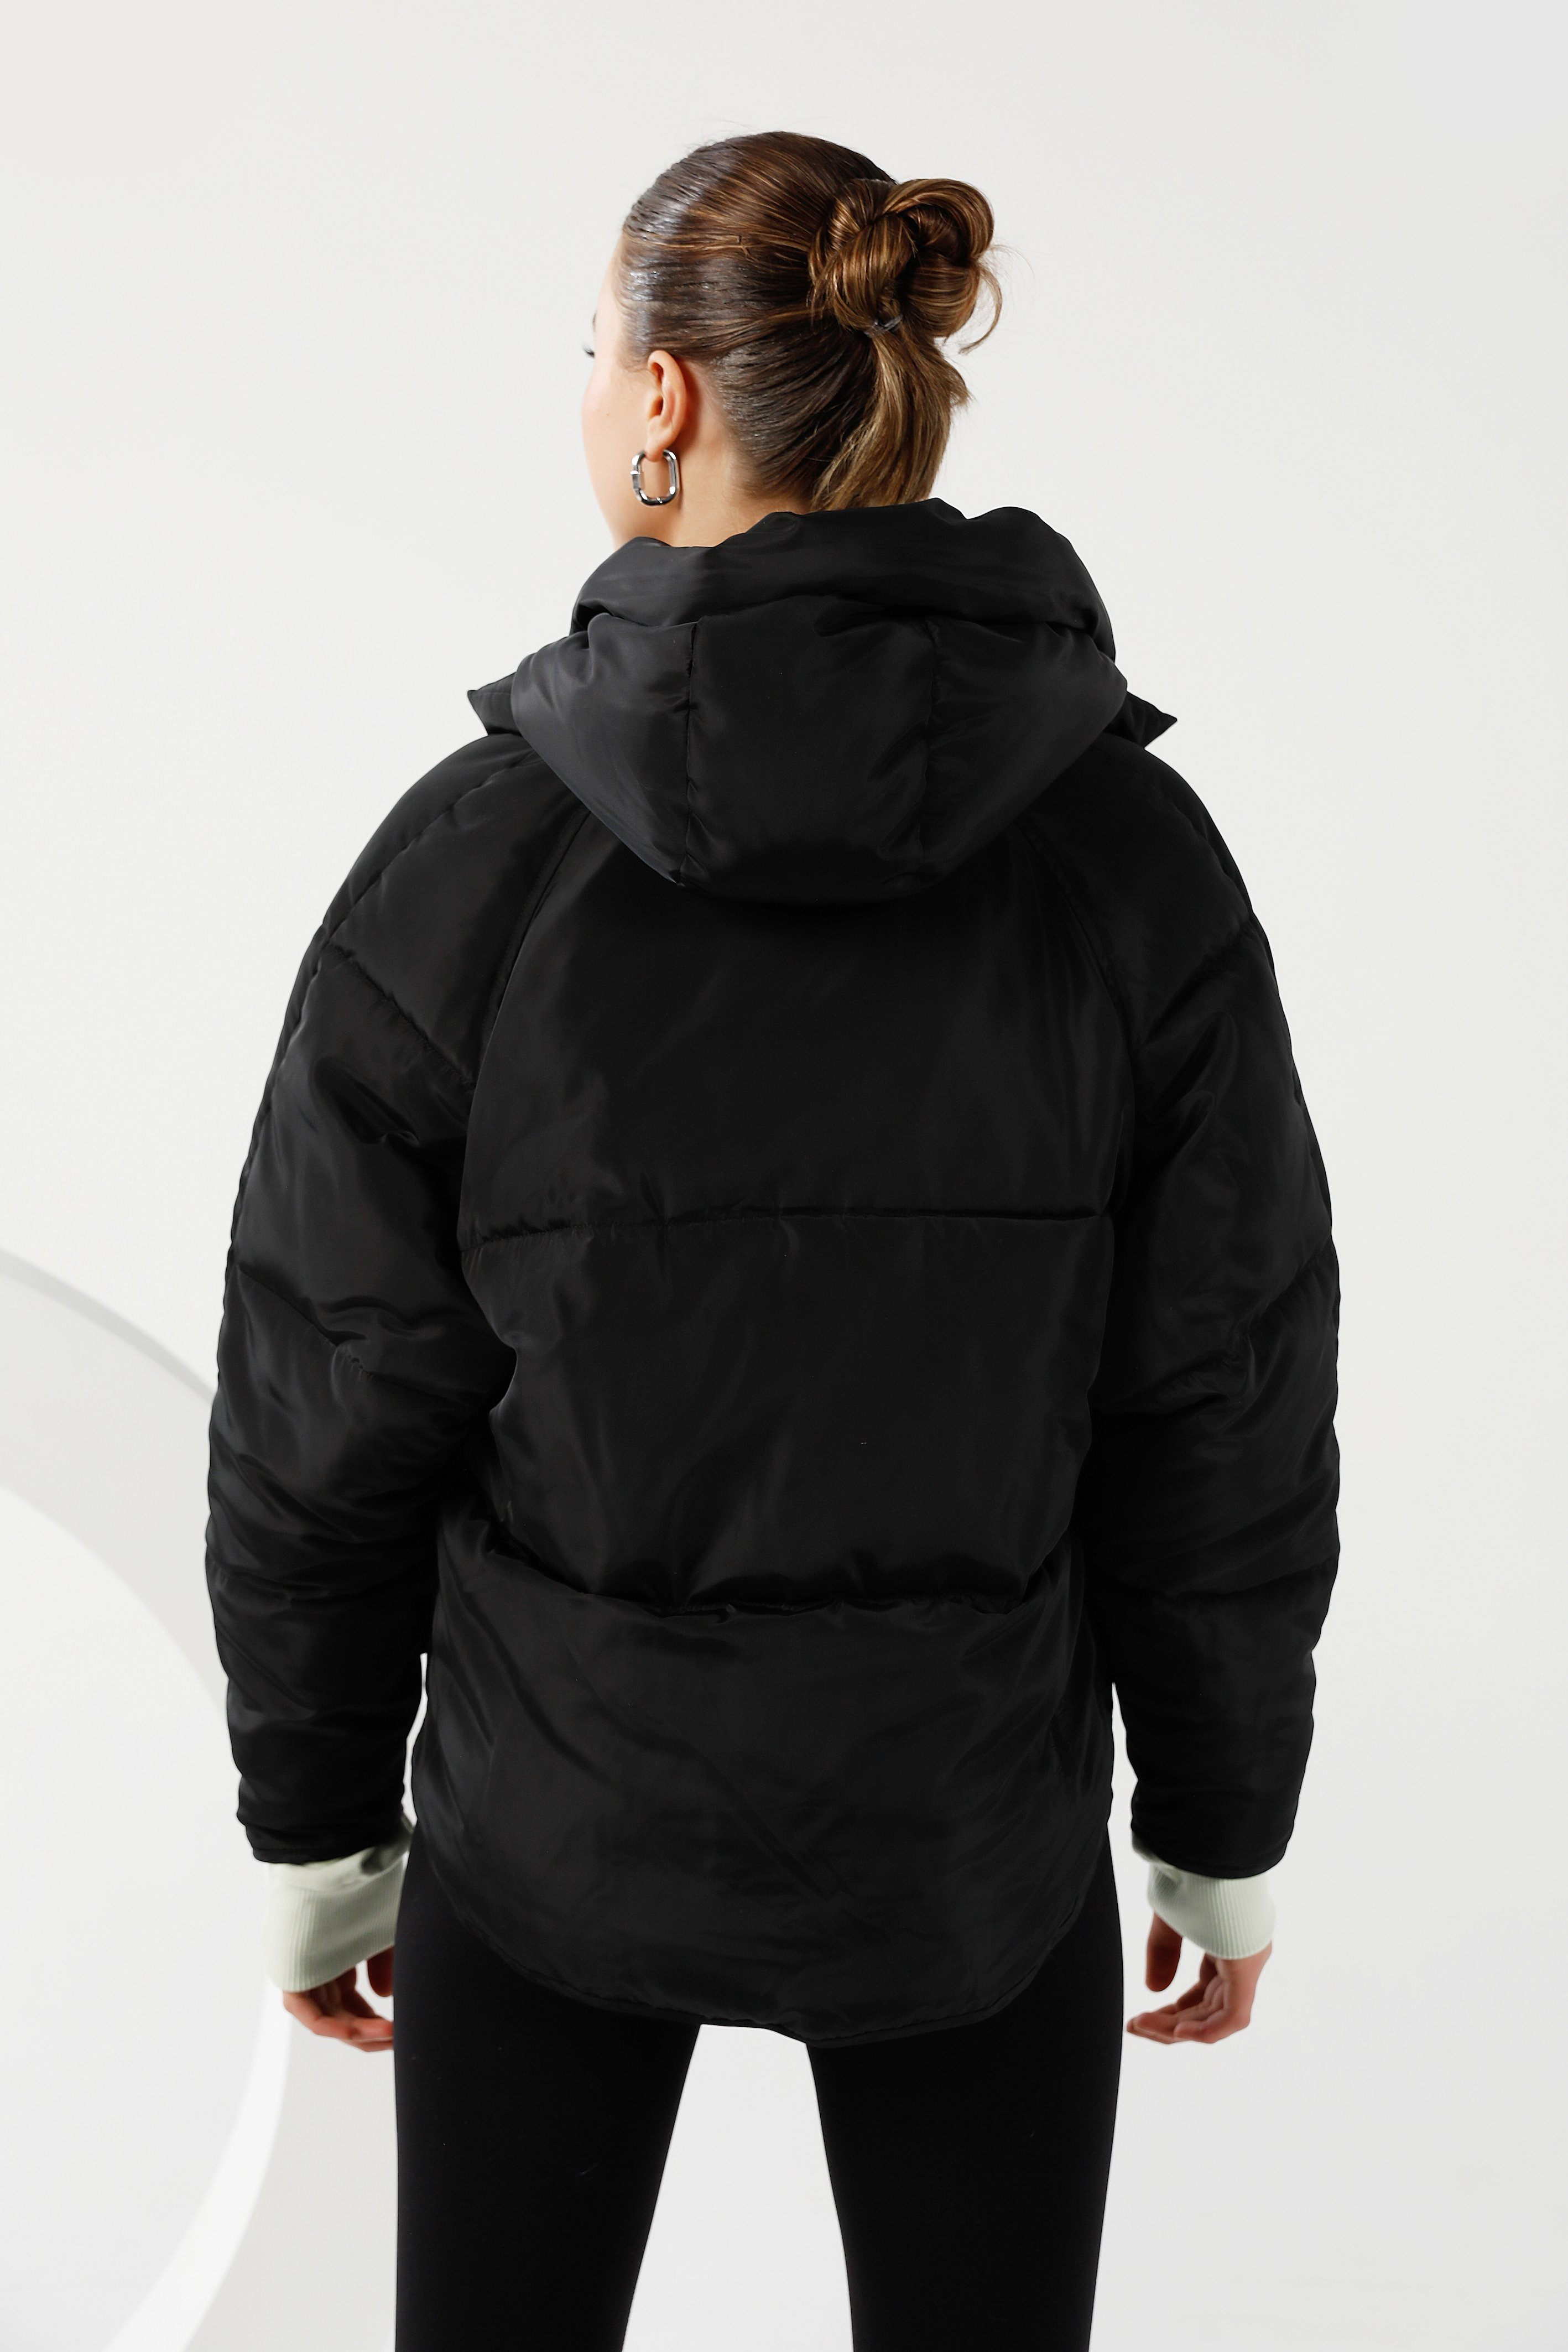 Pluto Puffer Jacket - Black Short Jacket Toast Society